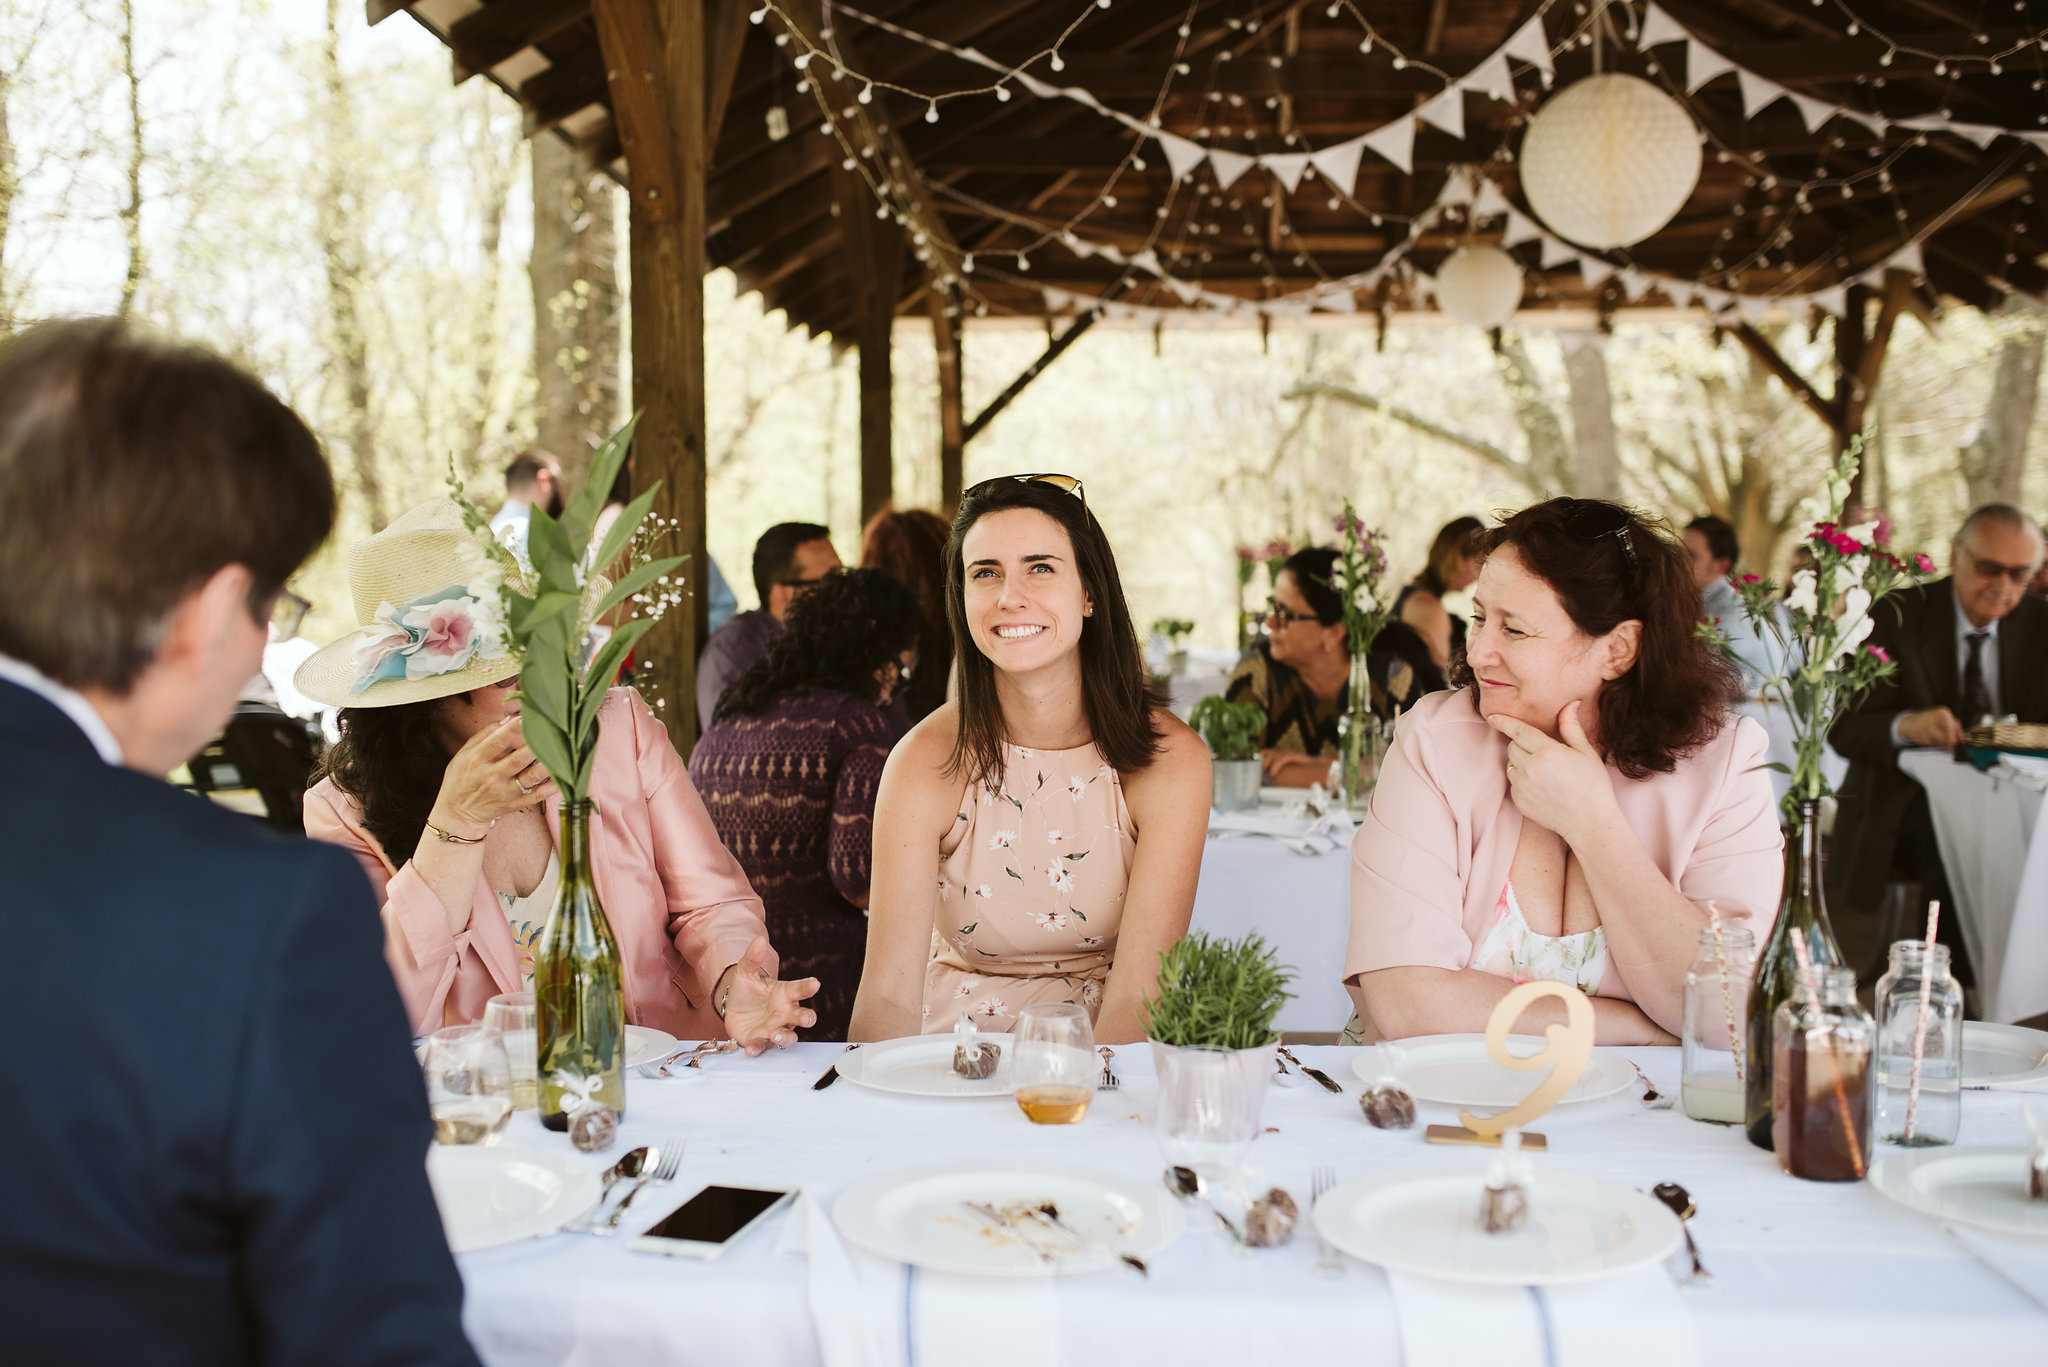 Spring Outdoor Wedding, Park, Baltimore Wedding Photographer, DIY, Classic, Upcycled, Garden Party, Romantic, Wedding Guests Laughing at Reception Tables, Wine Bottle Centerpieces